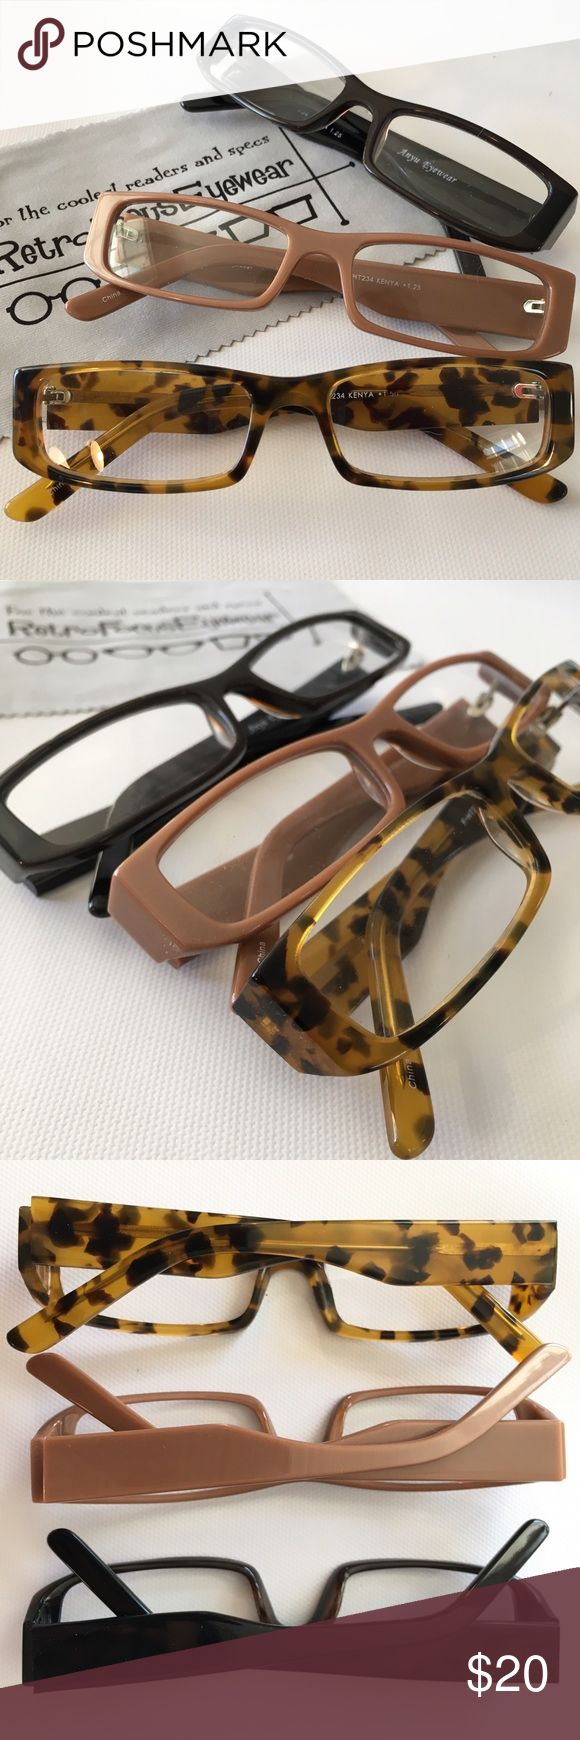 "NEW Reading Glasses Unisex Tortoise Tan Black 🌸20% off 2 or more bundles!🌸These suit a petite small adult face. Better quality Acetate department store readers. Choose color and Strength below in selector.  Frame is 5"" across, stems are 5 1/4"" long, frame is under 1"" tall. Prescription friendly frames too💋NO OFFERS💋For less than 3 pairs, I'll make a custom listing for you. 2 pairs is $15,  1 pair is $10.  These are not drug store quality and will last.  At this price you can have a pair…"